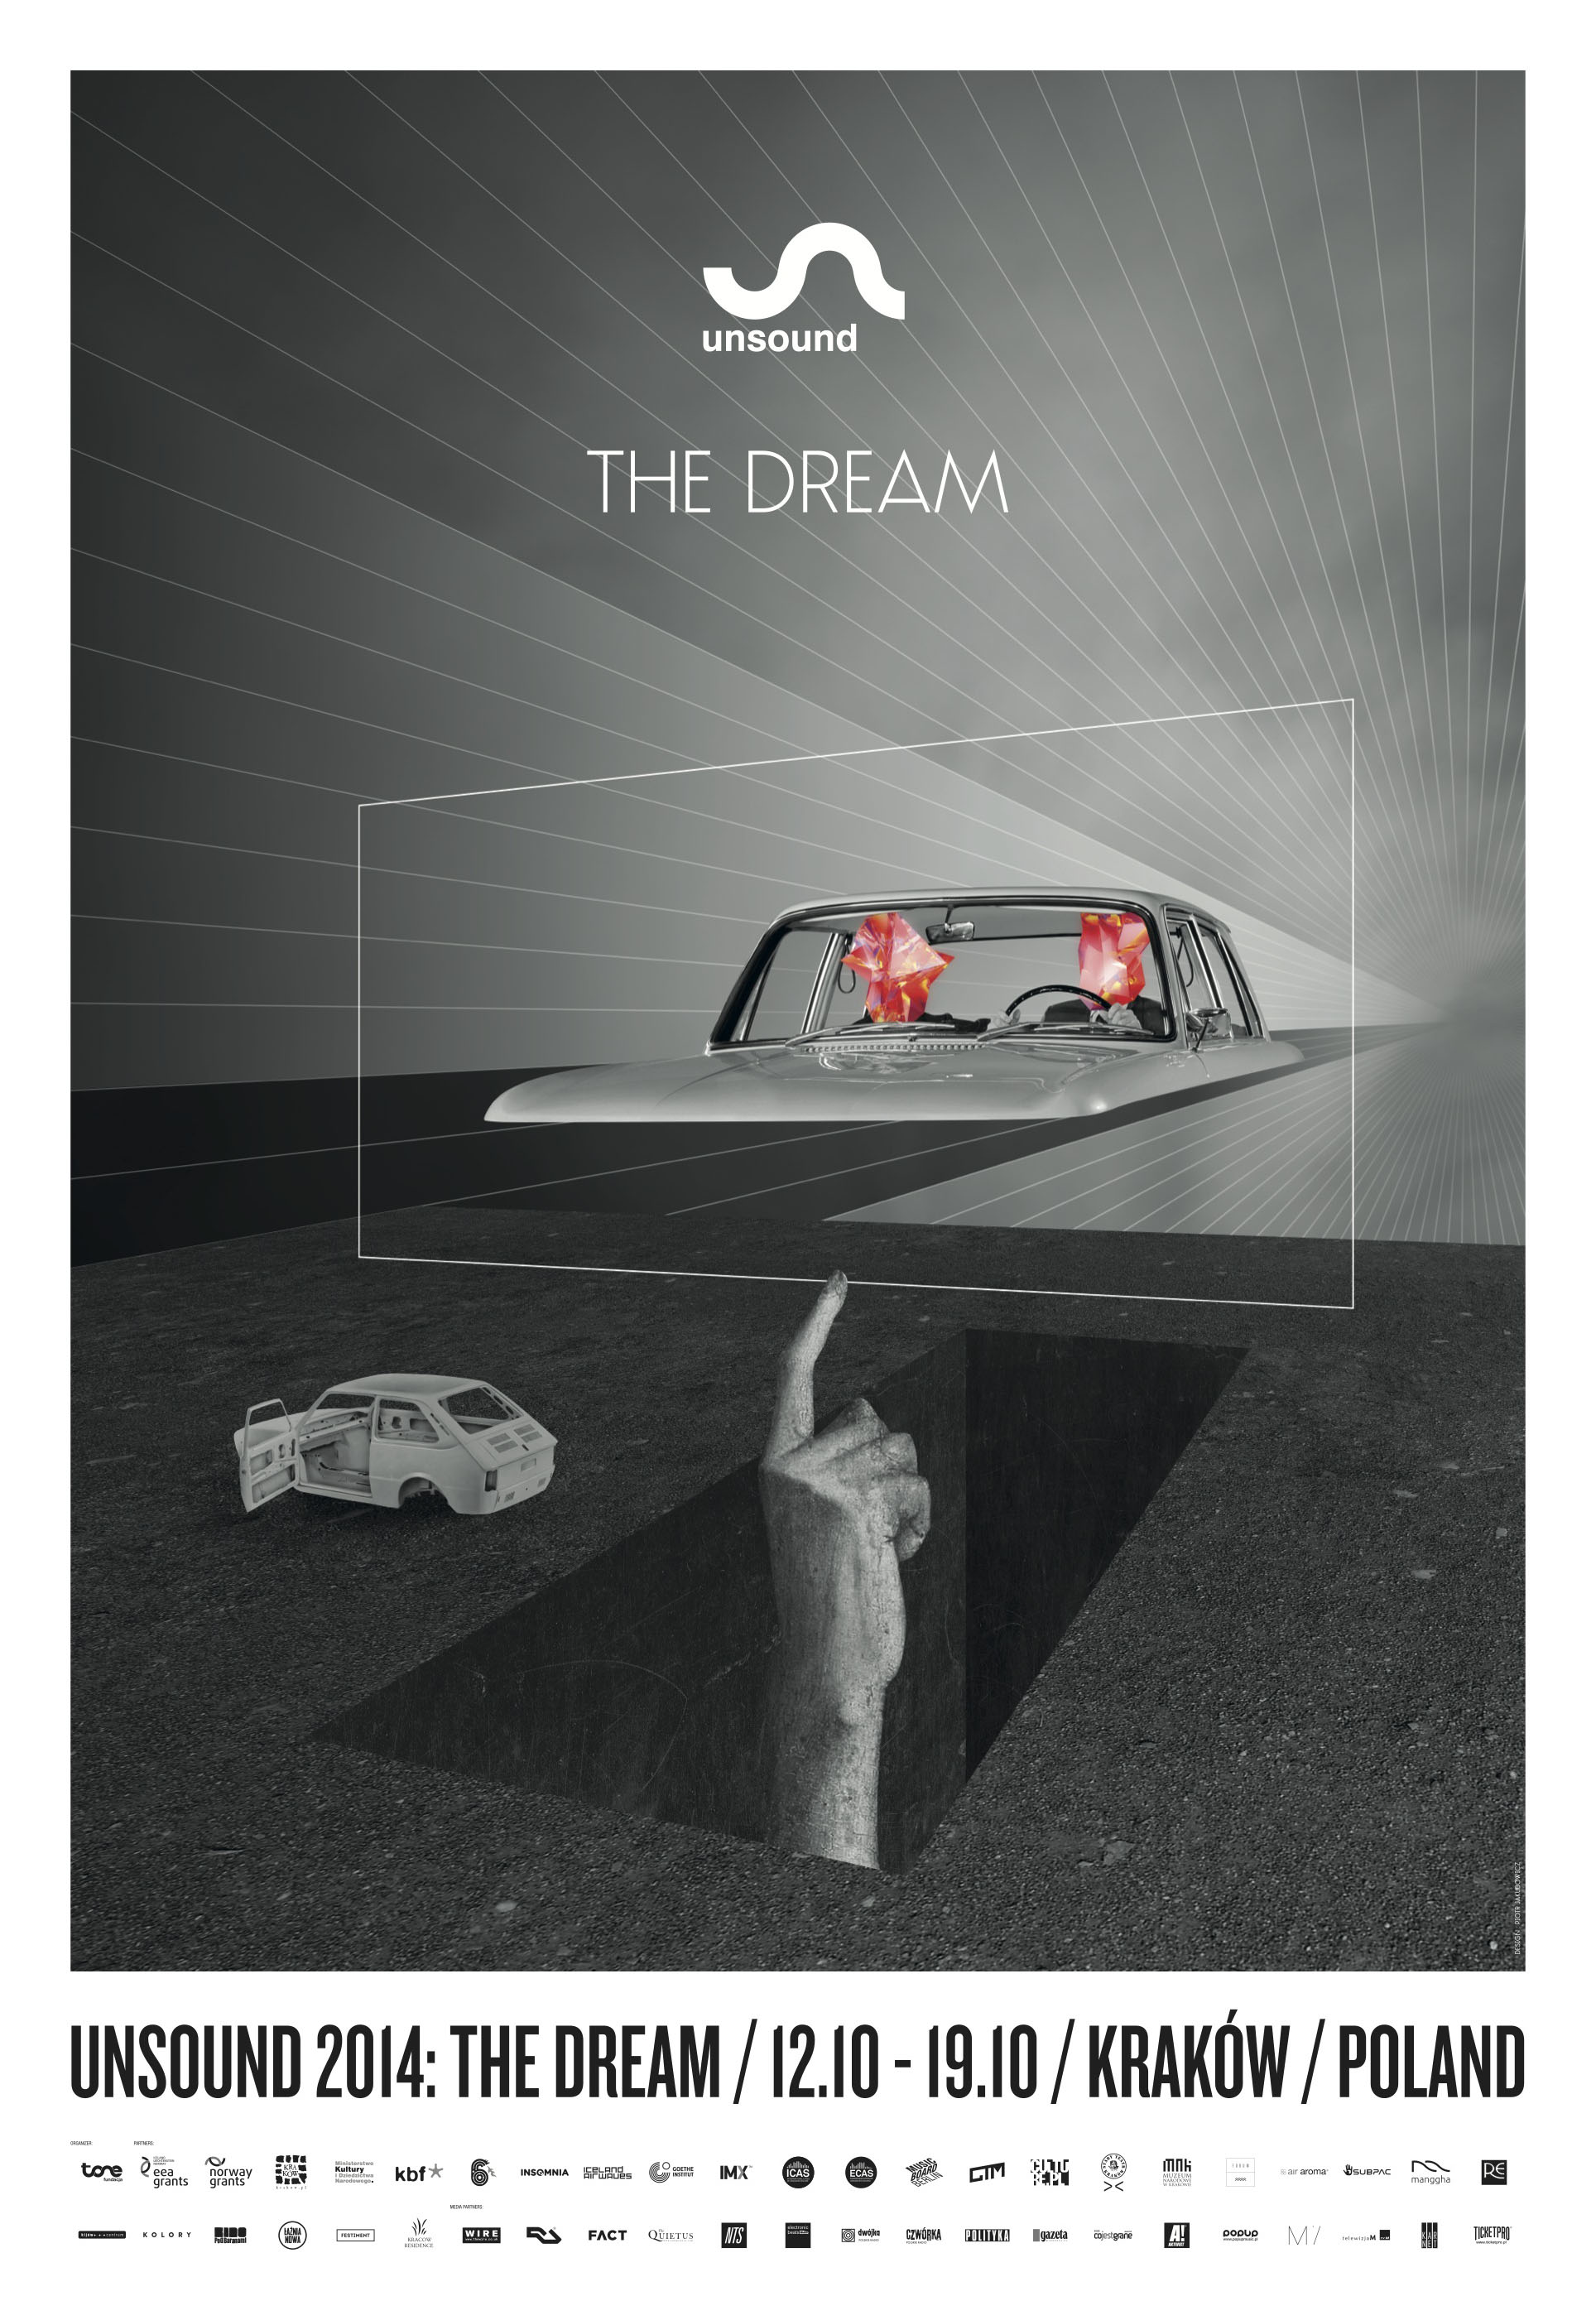 Unsound Kraków 2014: The Dream poster